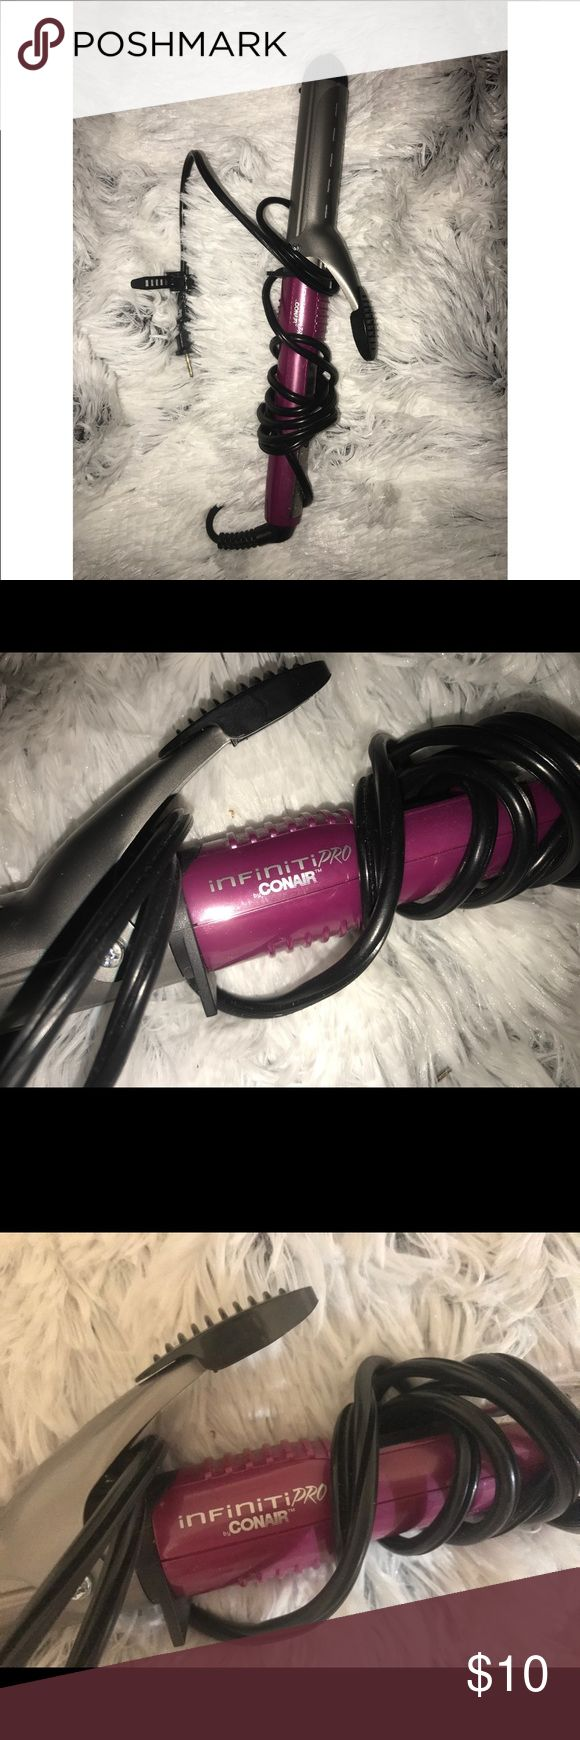 INFINITY PRO CONAIR CURLING IRON This is about 1.25 inches Rarely used and cleaned Long cord conair Other